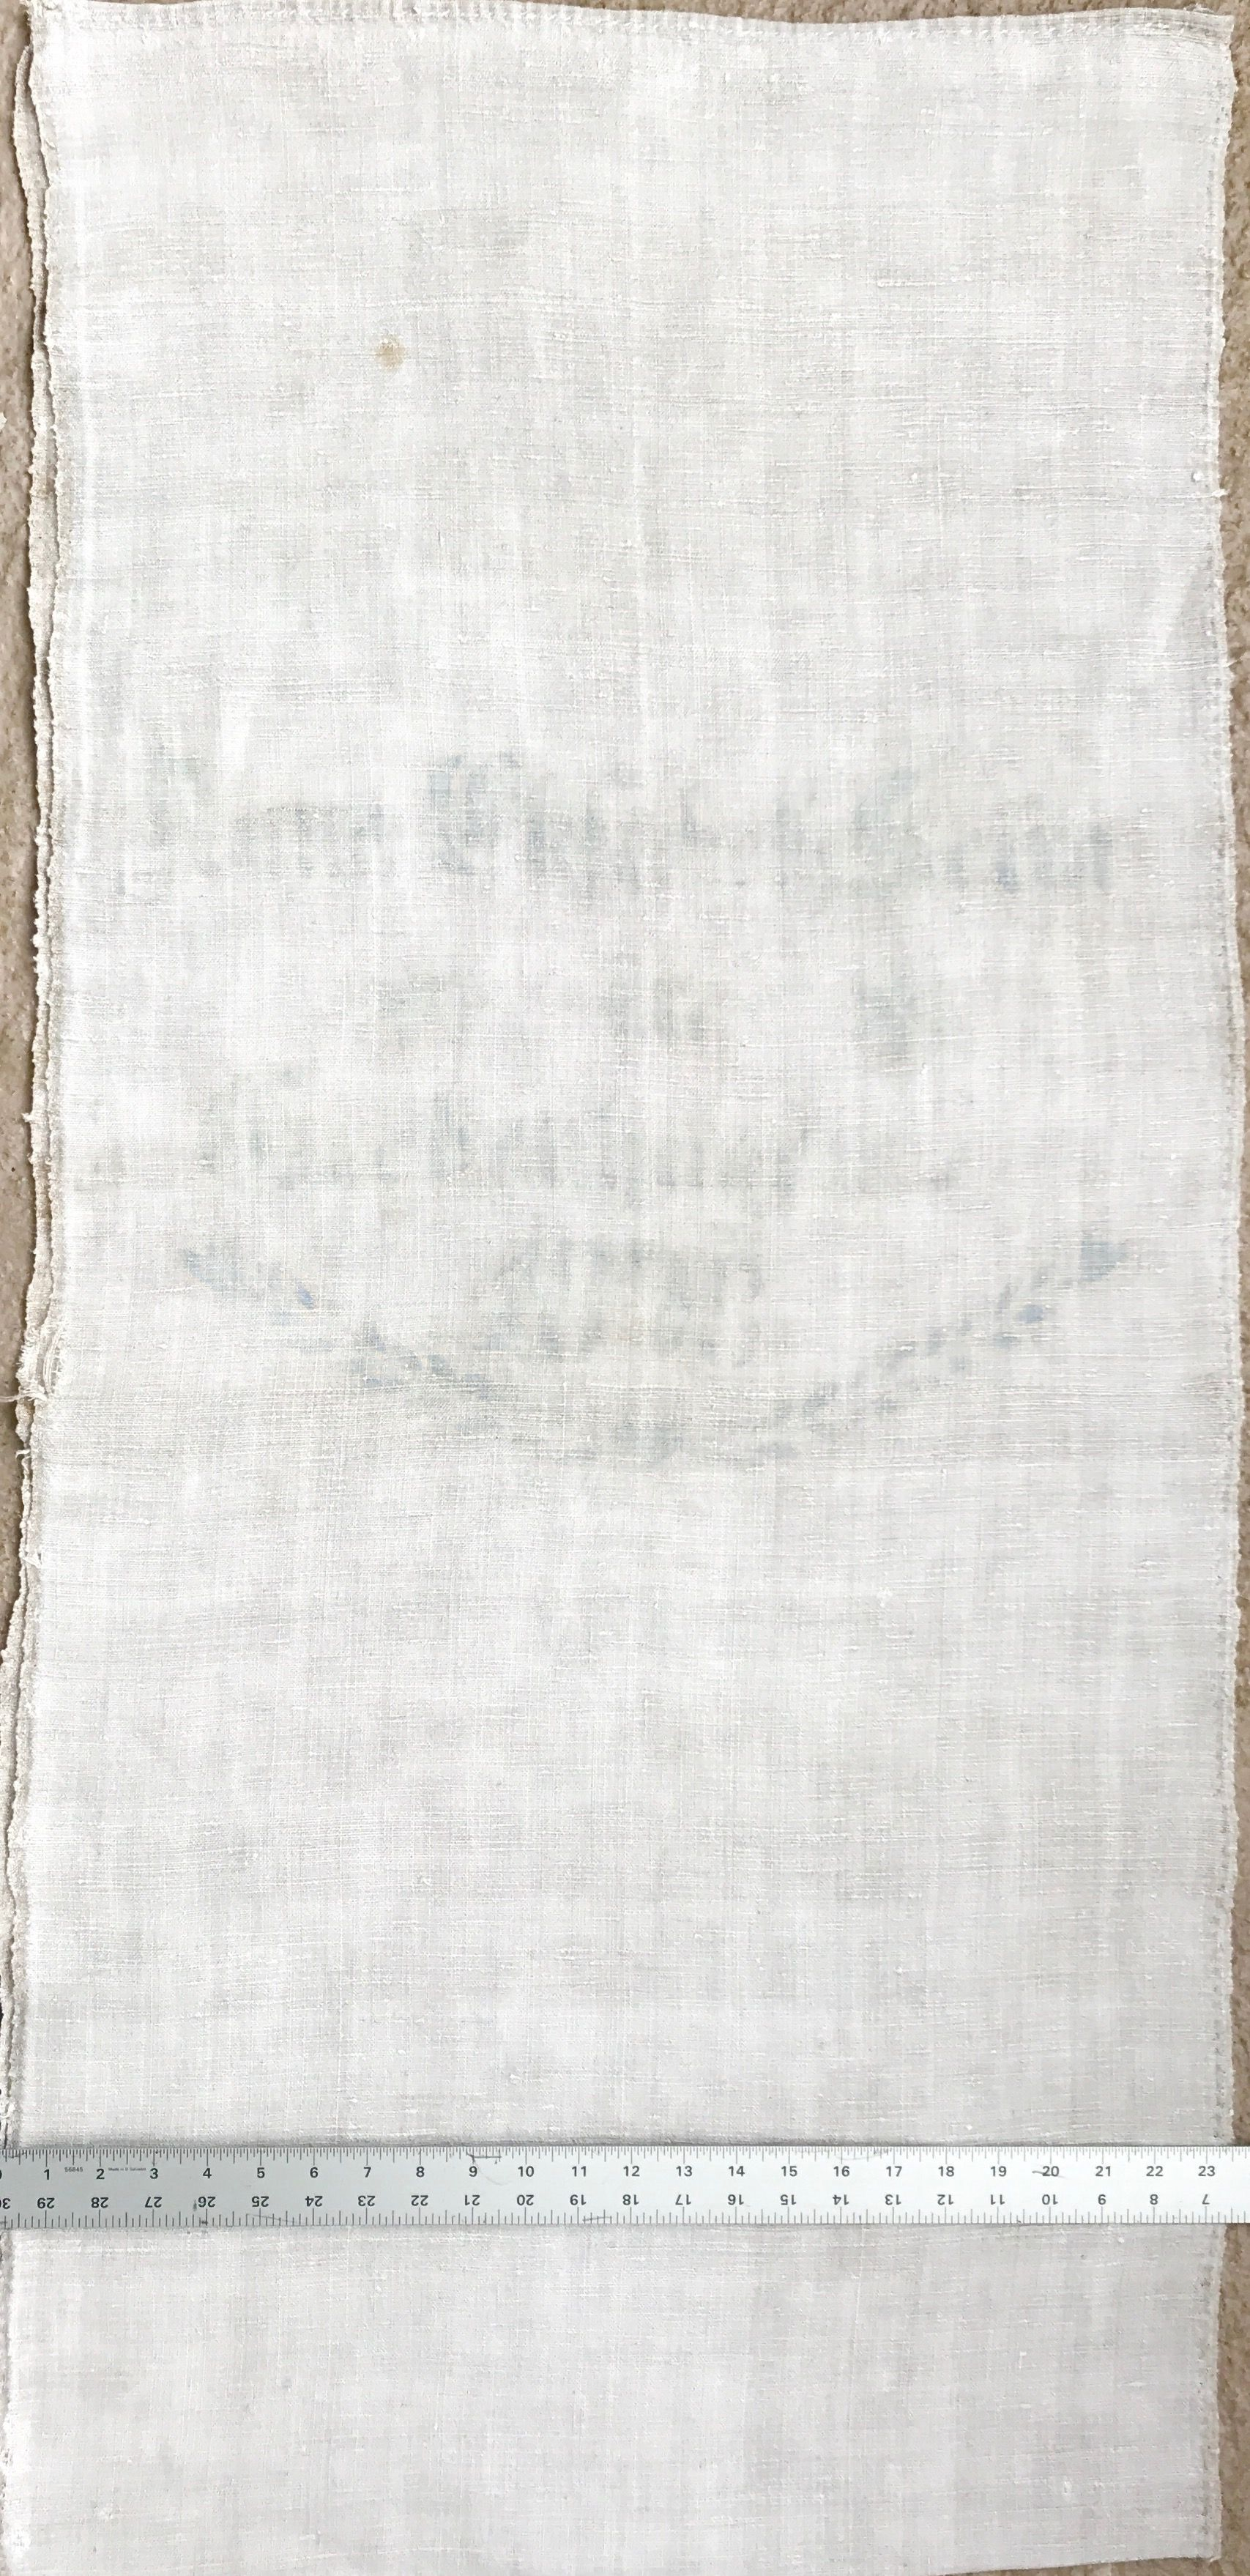 Original Historic German Grain Flour Sack Batch 37 Print Color Light Blue